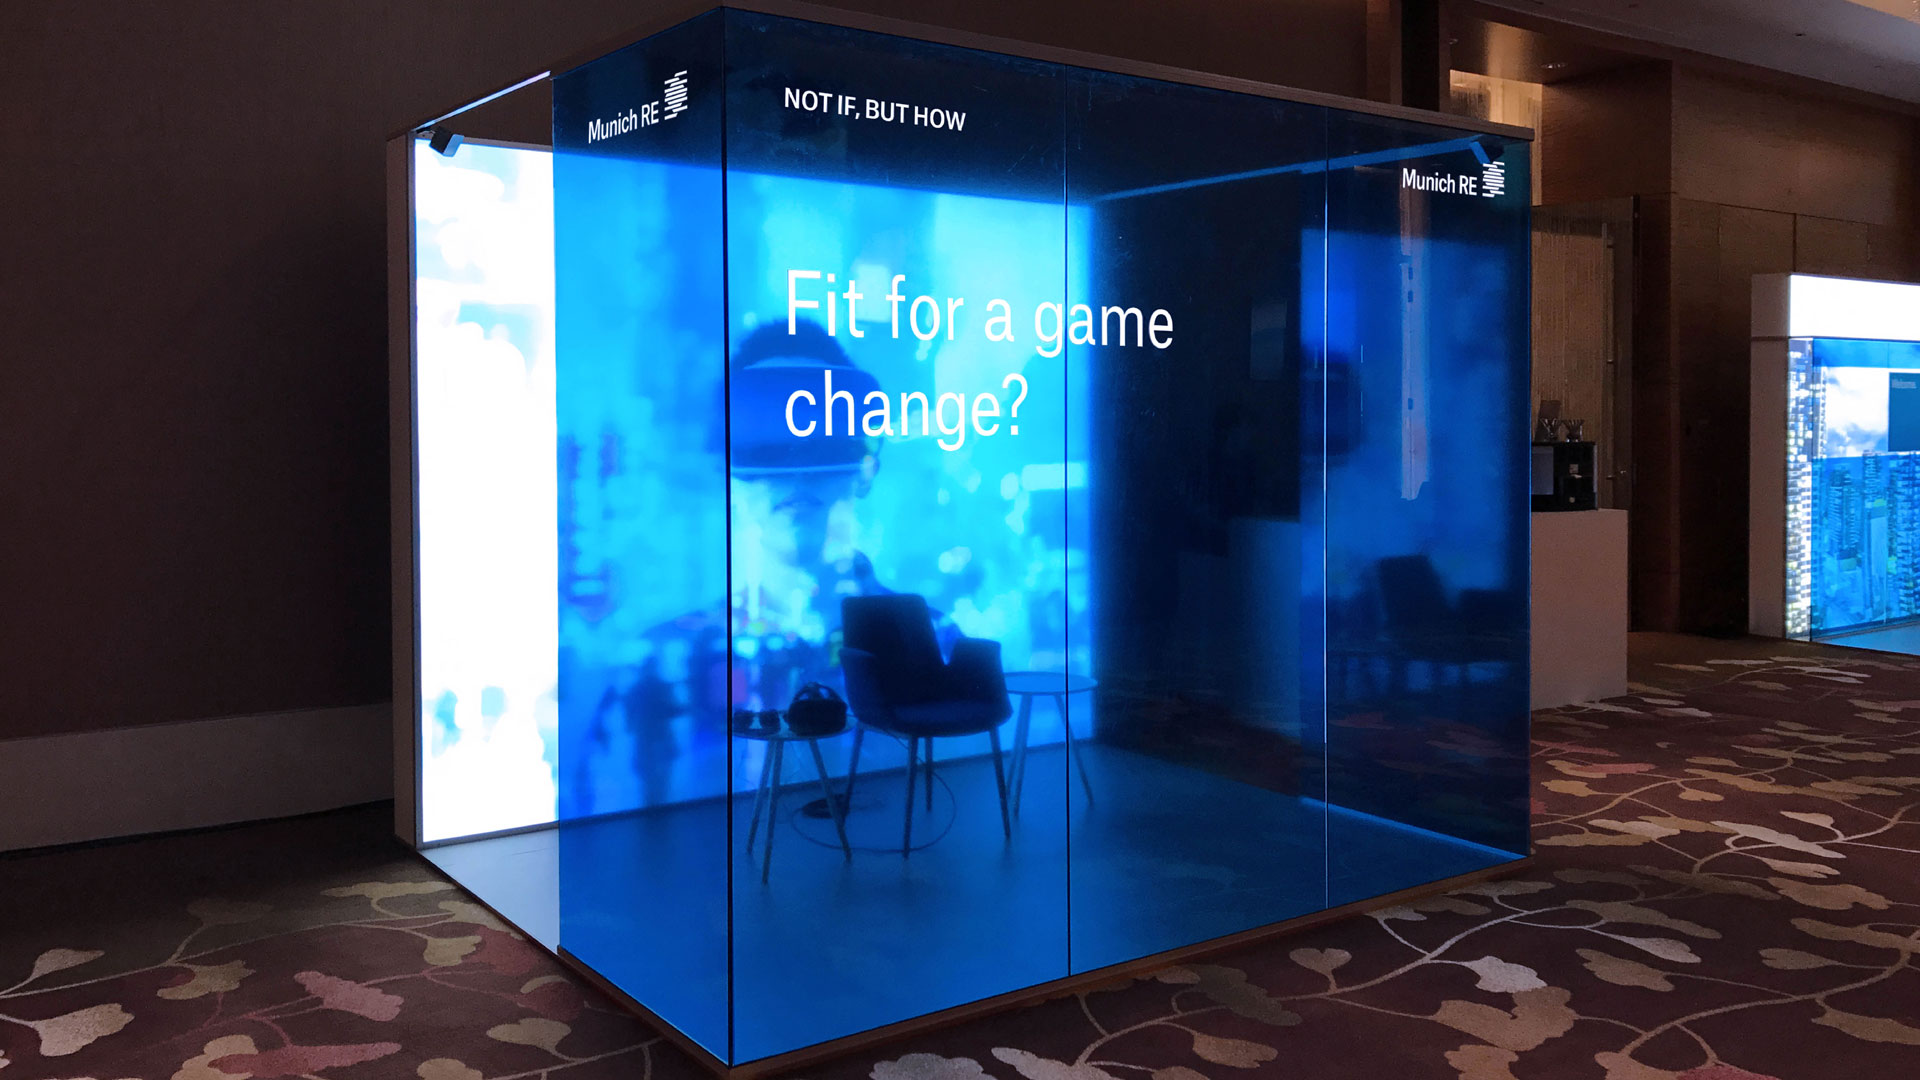 In a blue cube there is a chair and a table with VR glasses on it. On the blue glass pane is written: Fit for a game change?